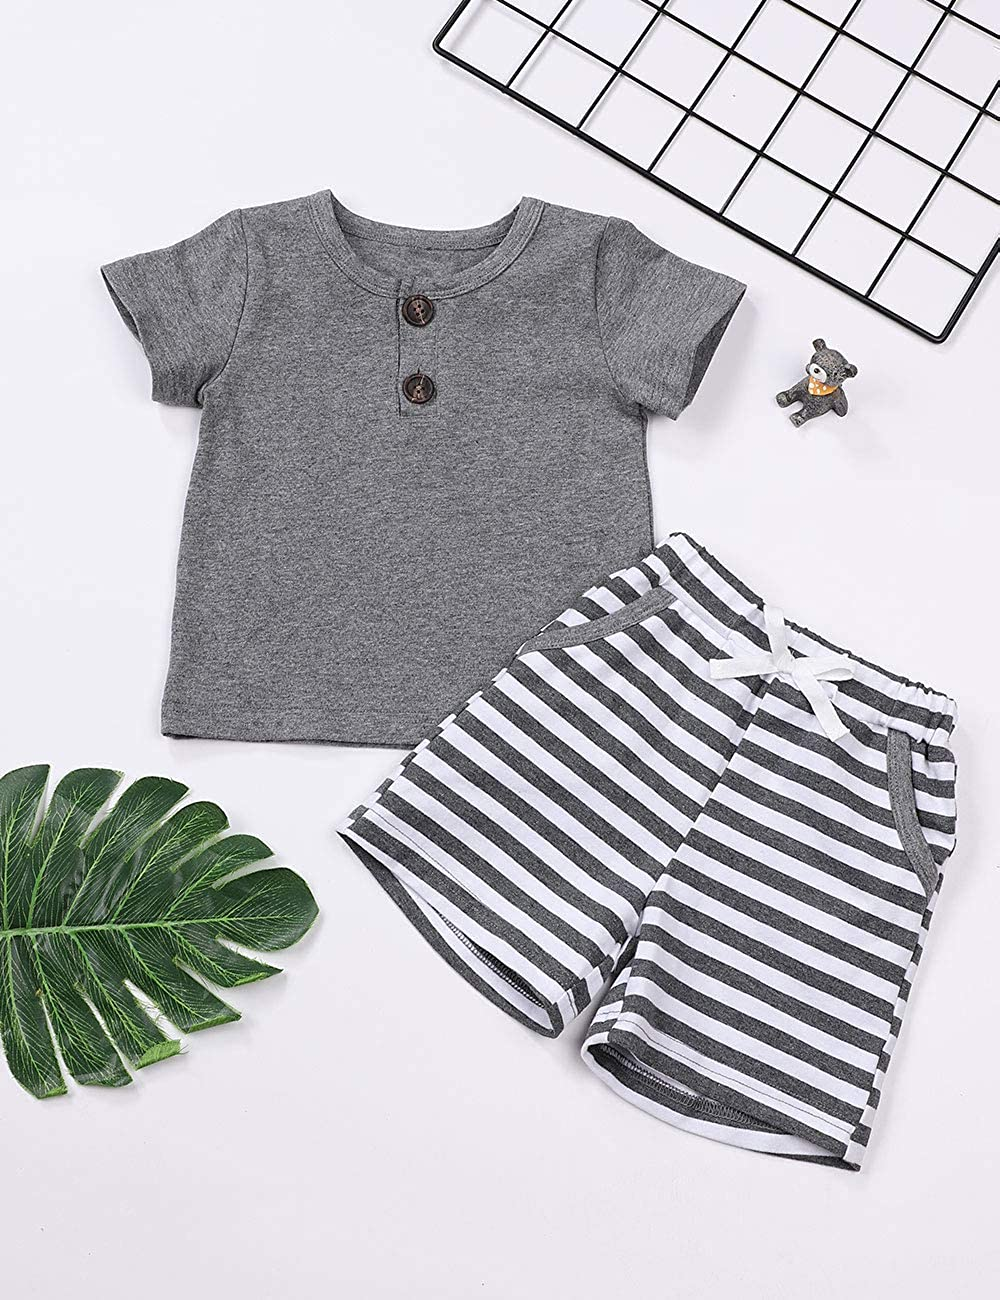 Baby Boy Clothes Solid Color Short Sleeve T-Shirt Tops Stripe Shorts Pants Summer Outfit